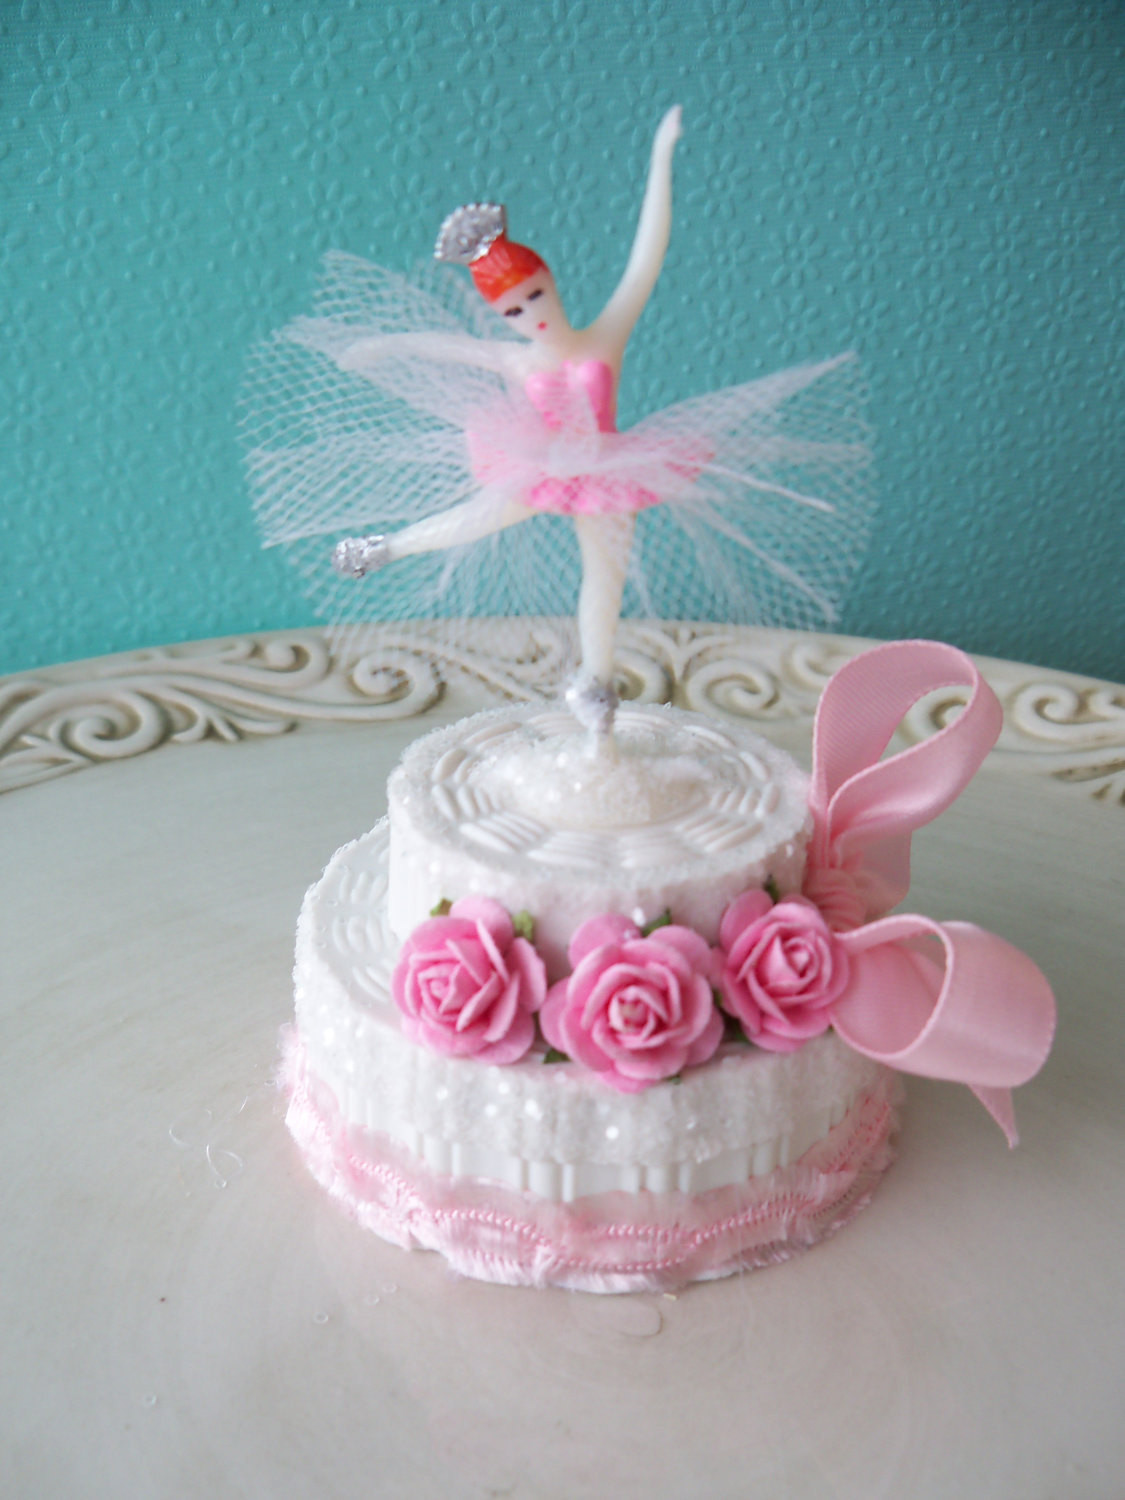 Best ideas about Ballerina Birthday Cake . Save or Pin Ballerina Birthday Cake Trinket Box for Ballet party TVAT Now.